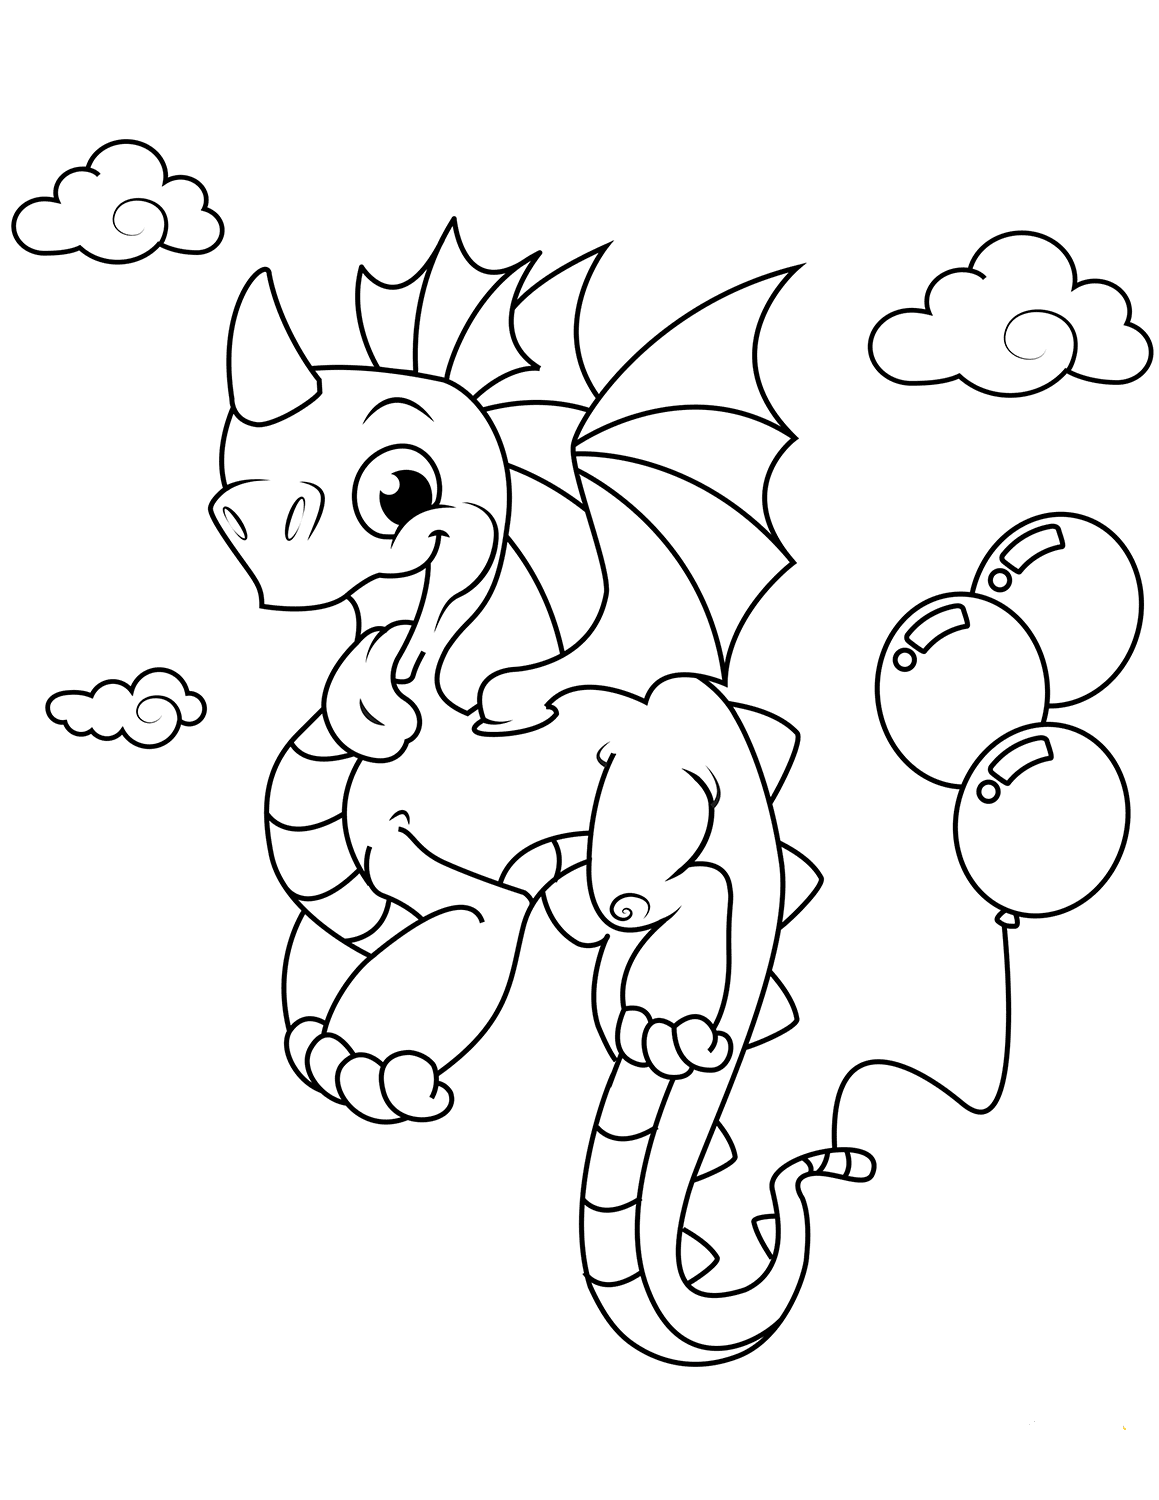 dragon coloring pages to print free printable dragon coloring pages for kids lettas to pages print coloring dragon